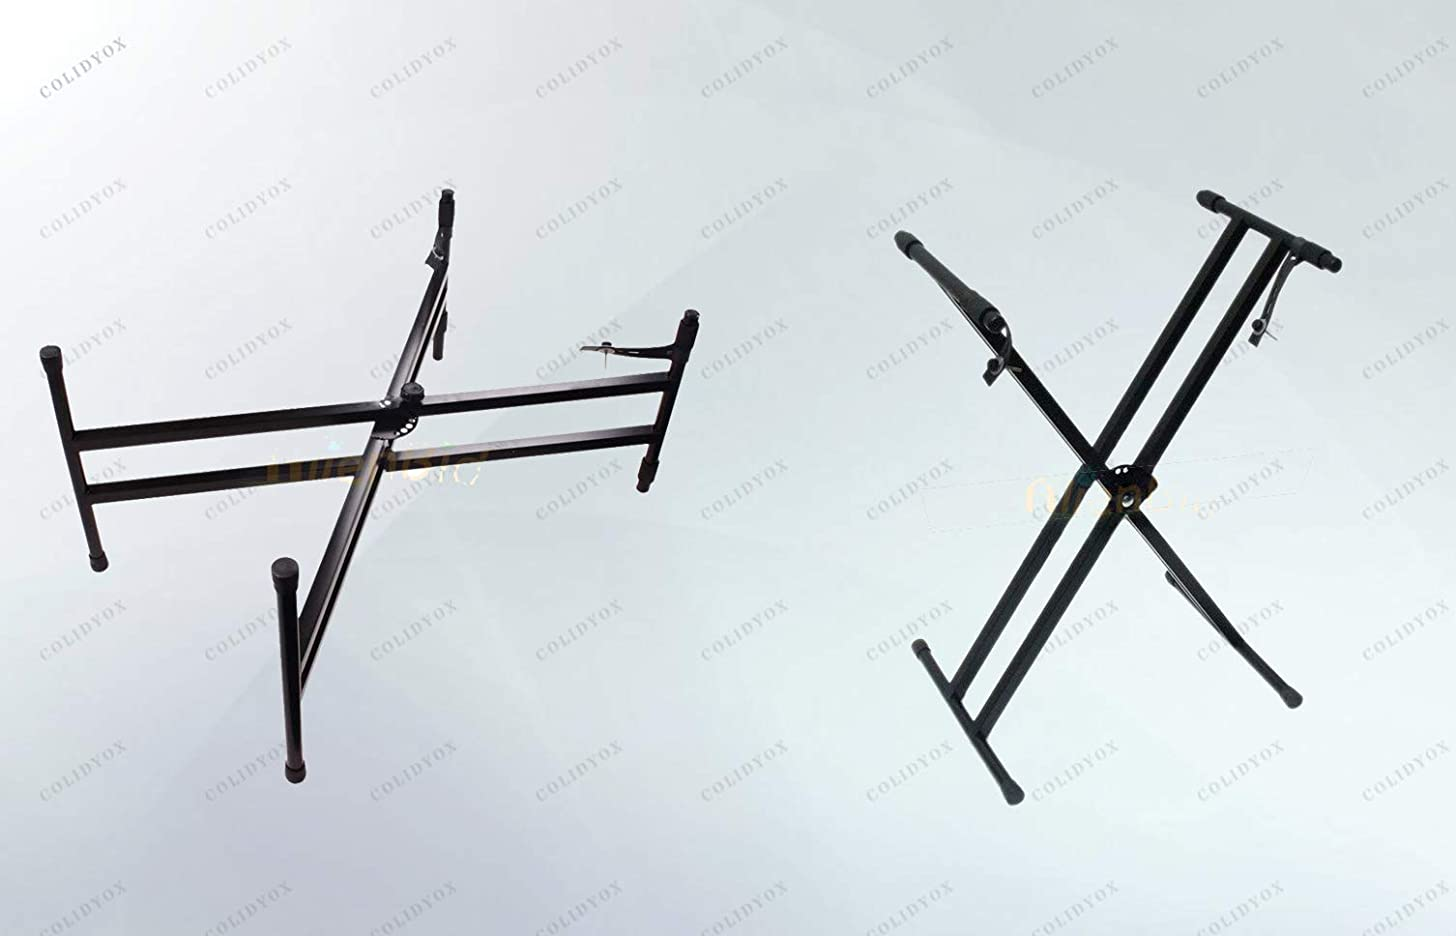 COLIDYOX_Keyboards,Dual-tube X-Shape Keyboard Stand,piece of cake,high-level X-type dual keyboard stand, materials and with stable and solid construction,easy transportation